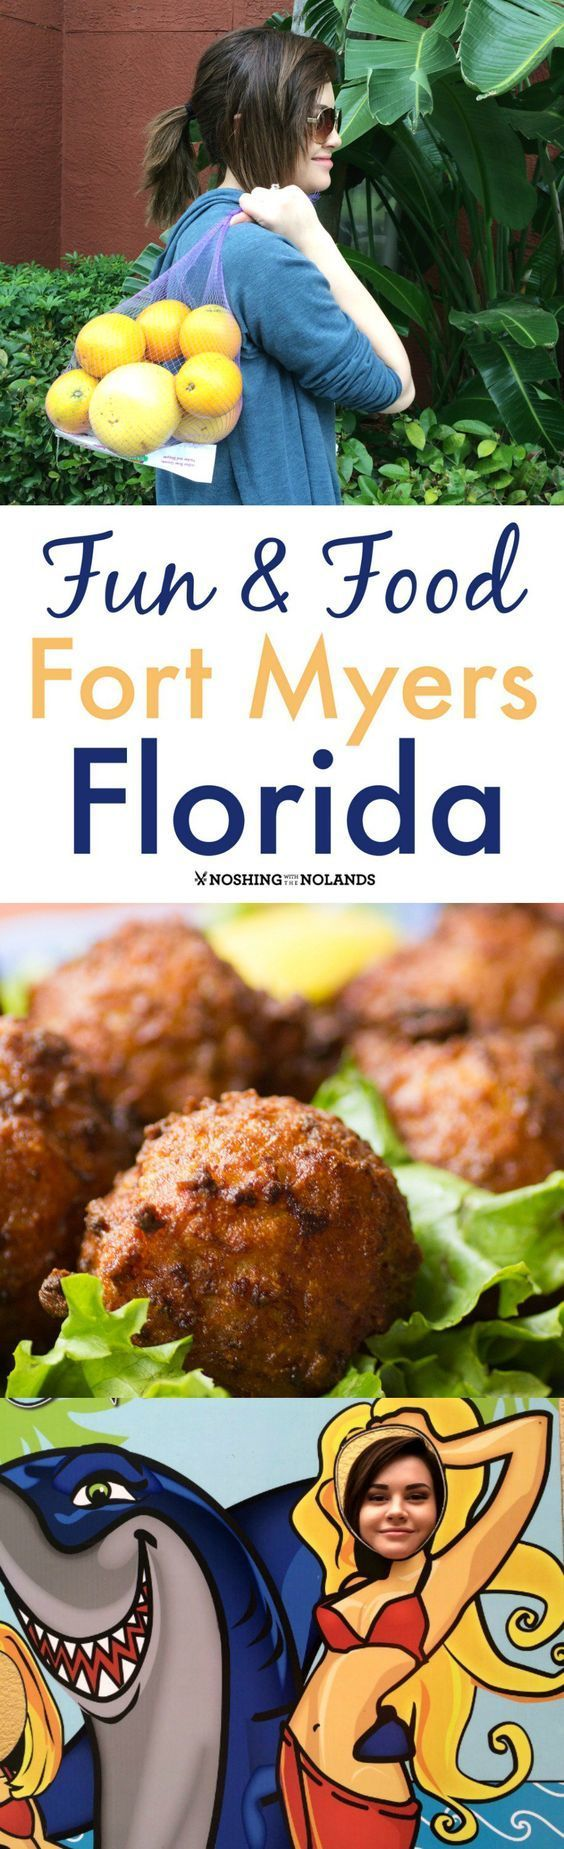 Fort Myers, Florida from Noshing With The Nolands - Whether you just want to sit back and relax or take in the sights, Fort Myers, Florida has it all!